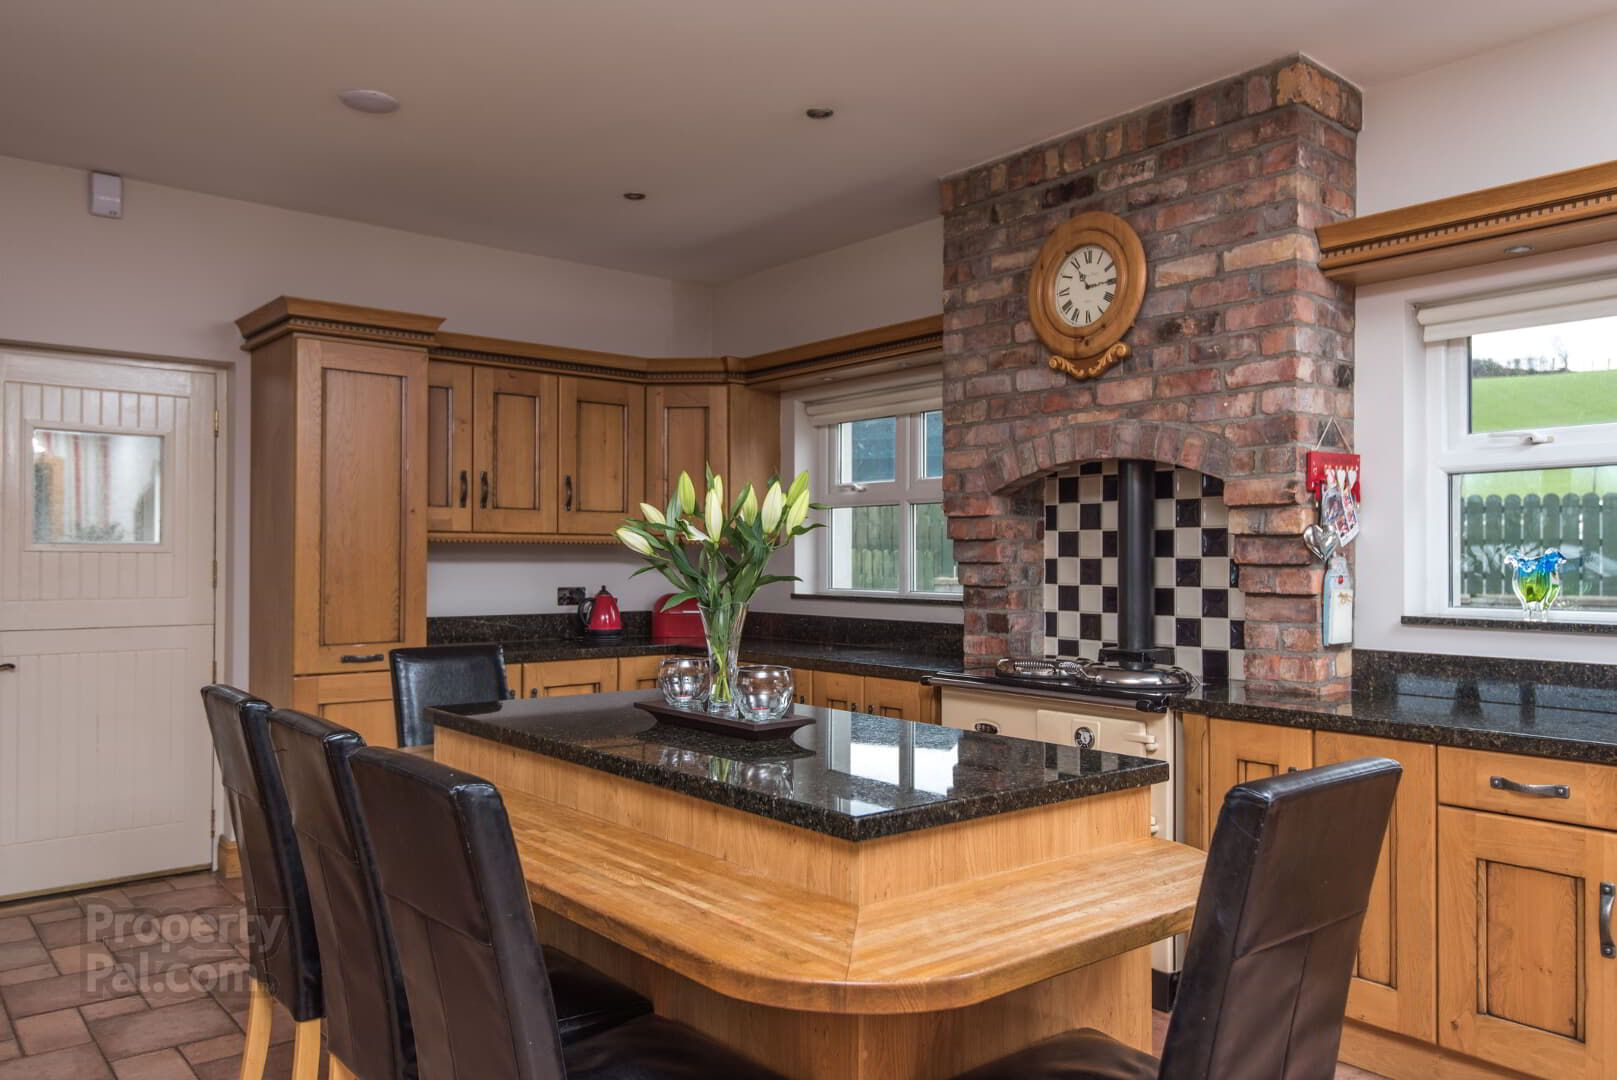 28 Lisbane Road, Scarva, Armagh kitchen (With images